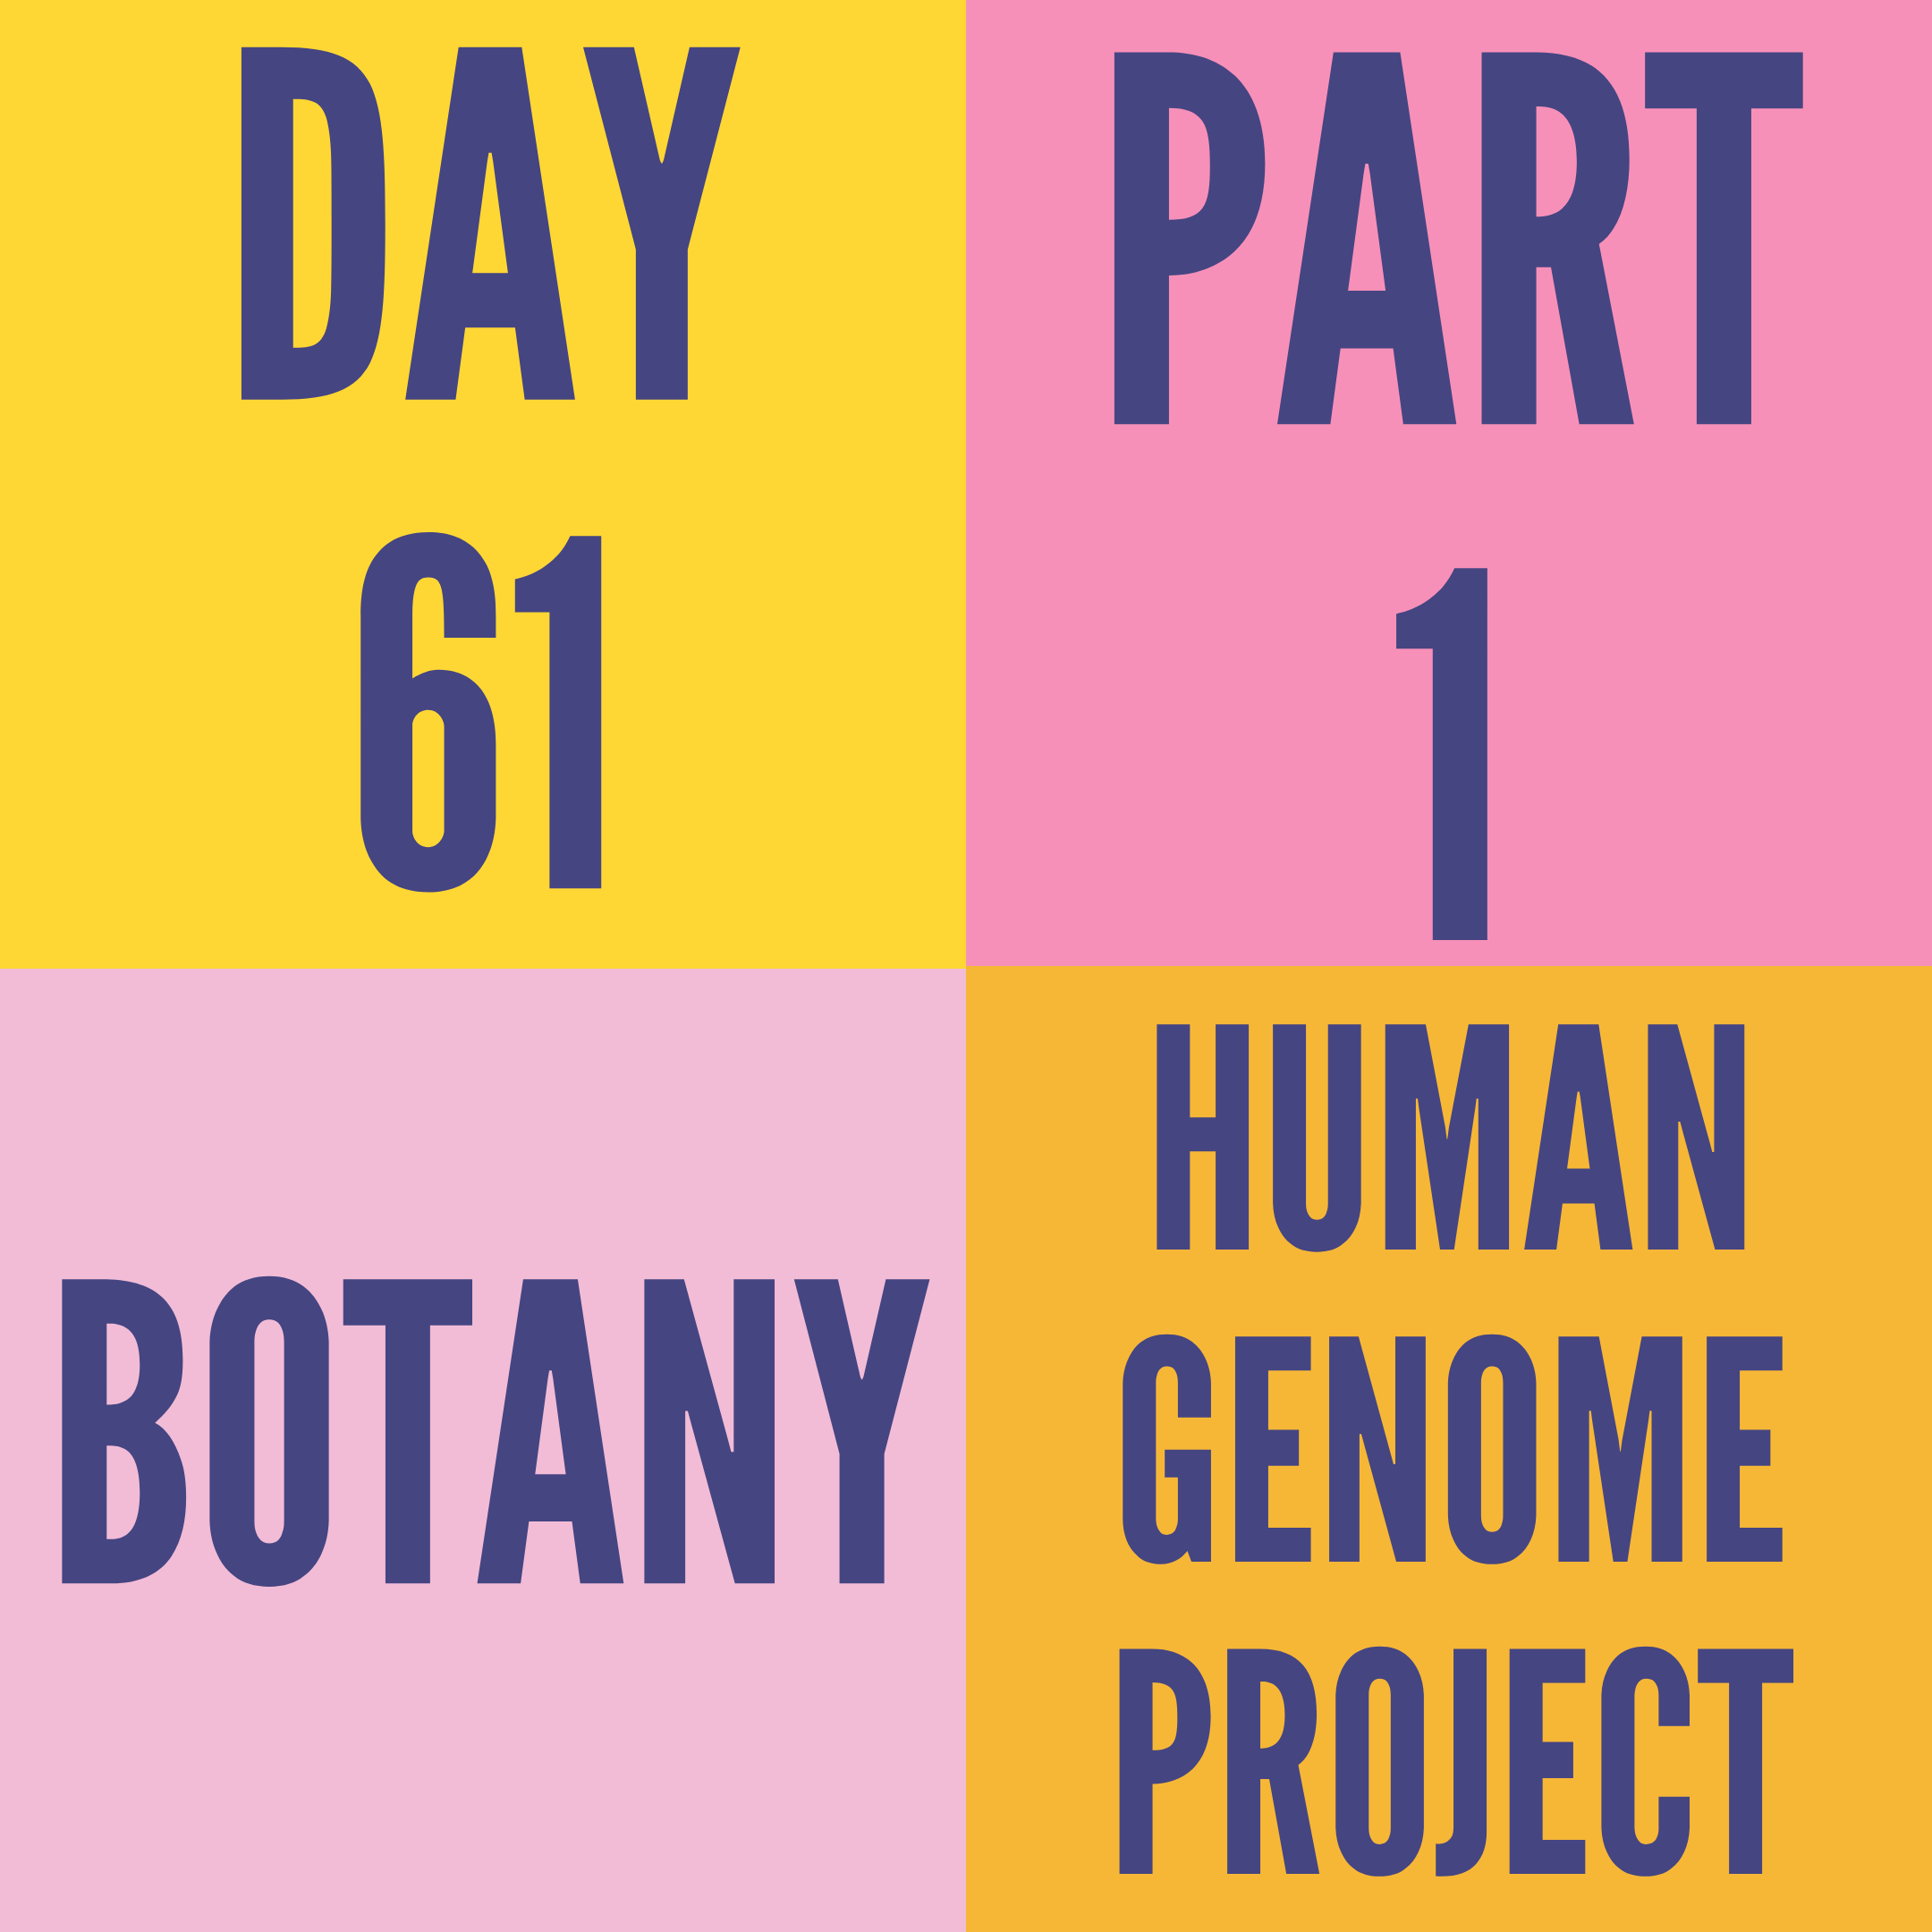 DAY-61 PART-1 HUMAN GENOME PROJECT